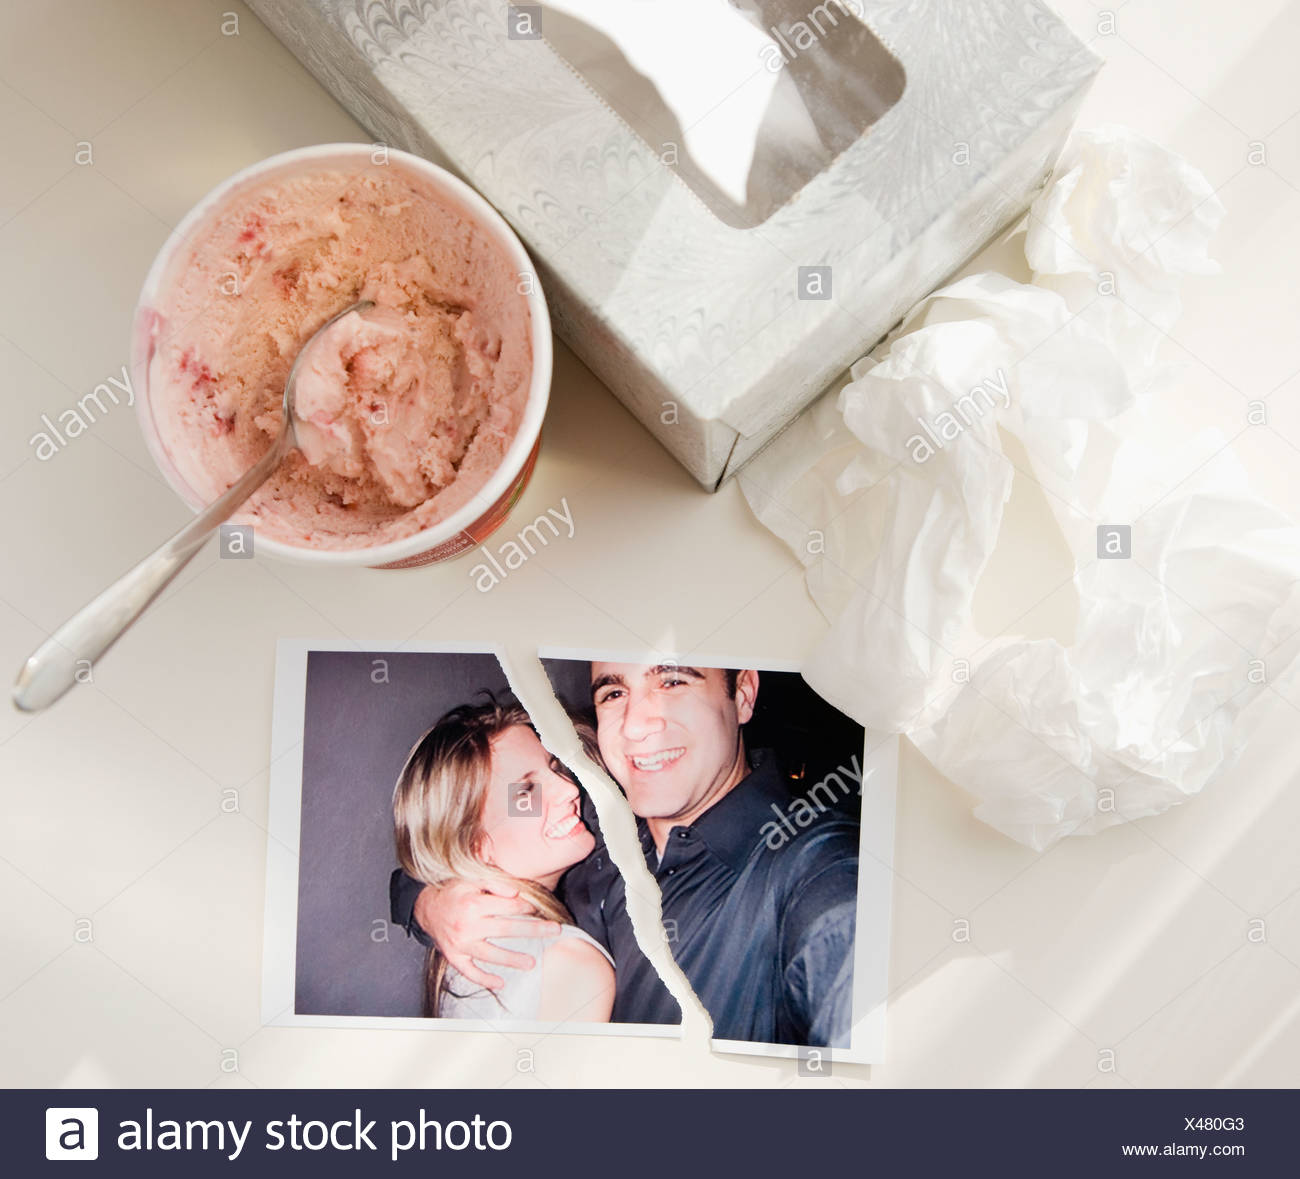 Ripped photograph next to ice cream and tissues - Stock Image